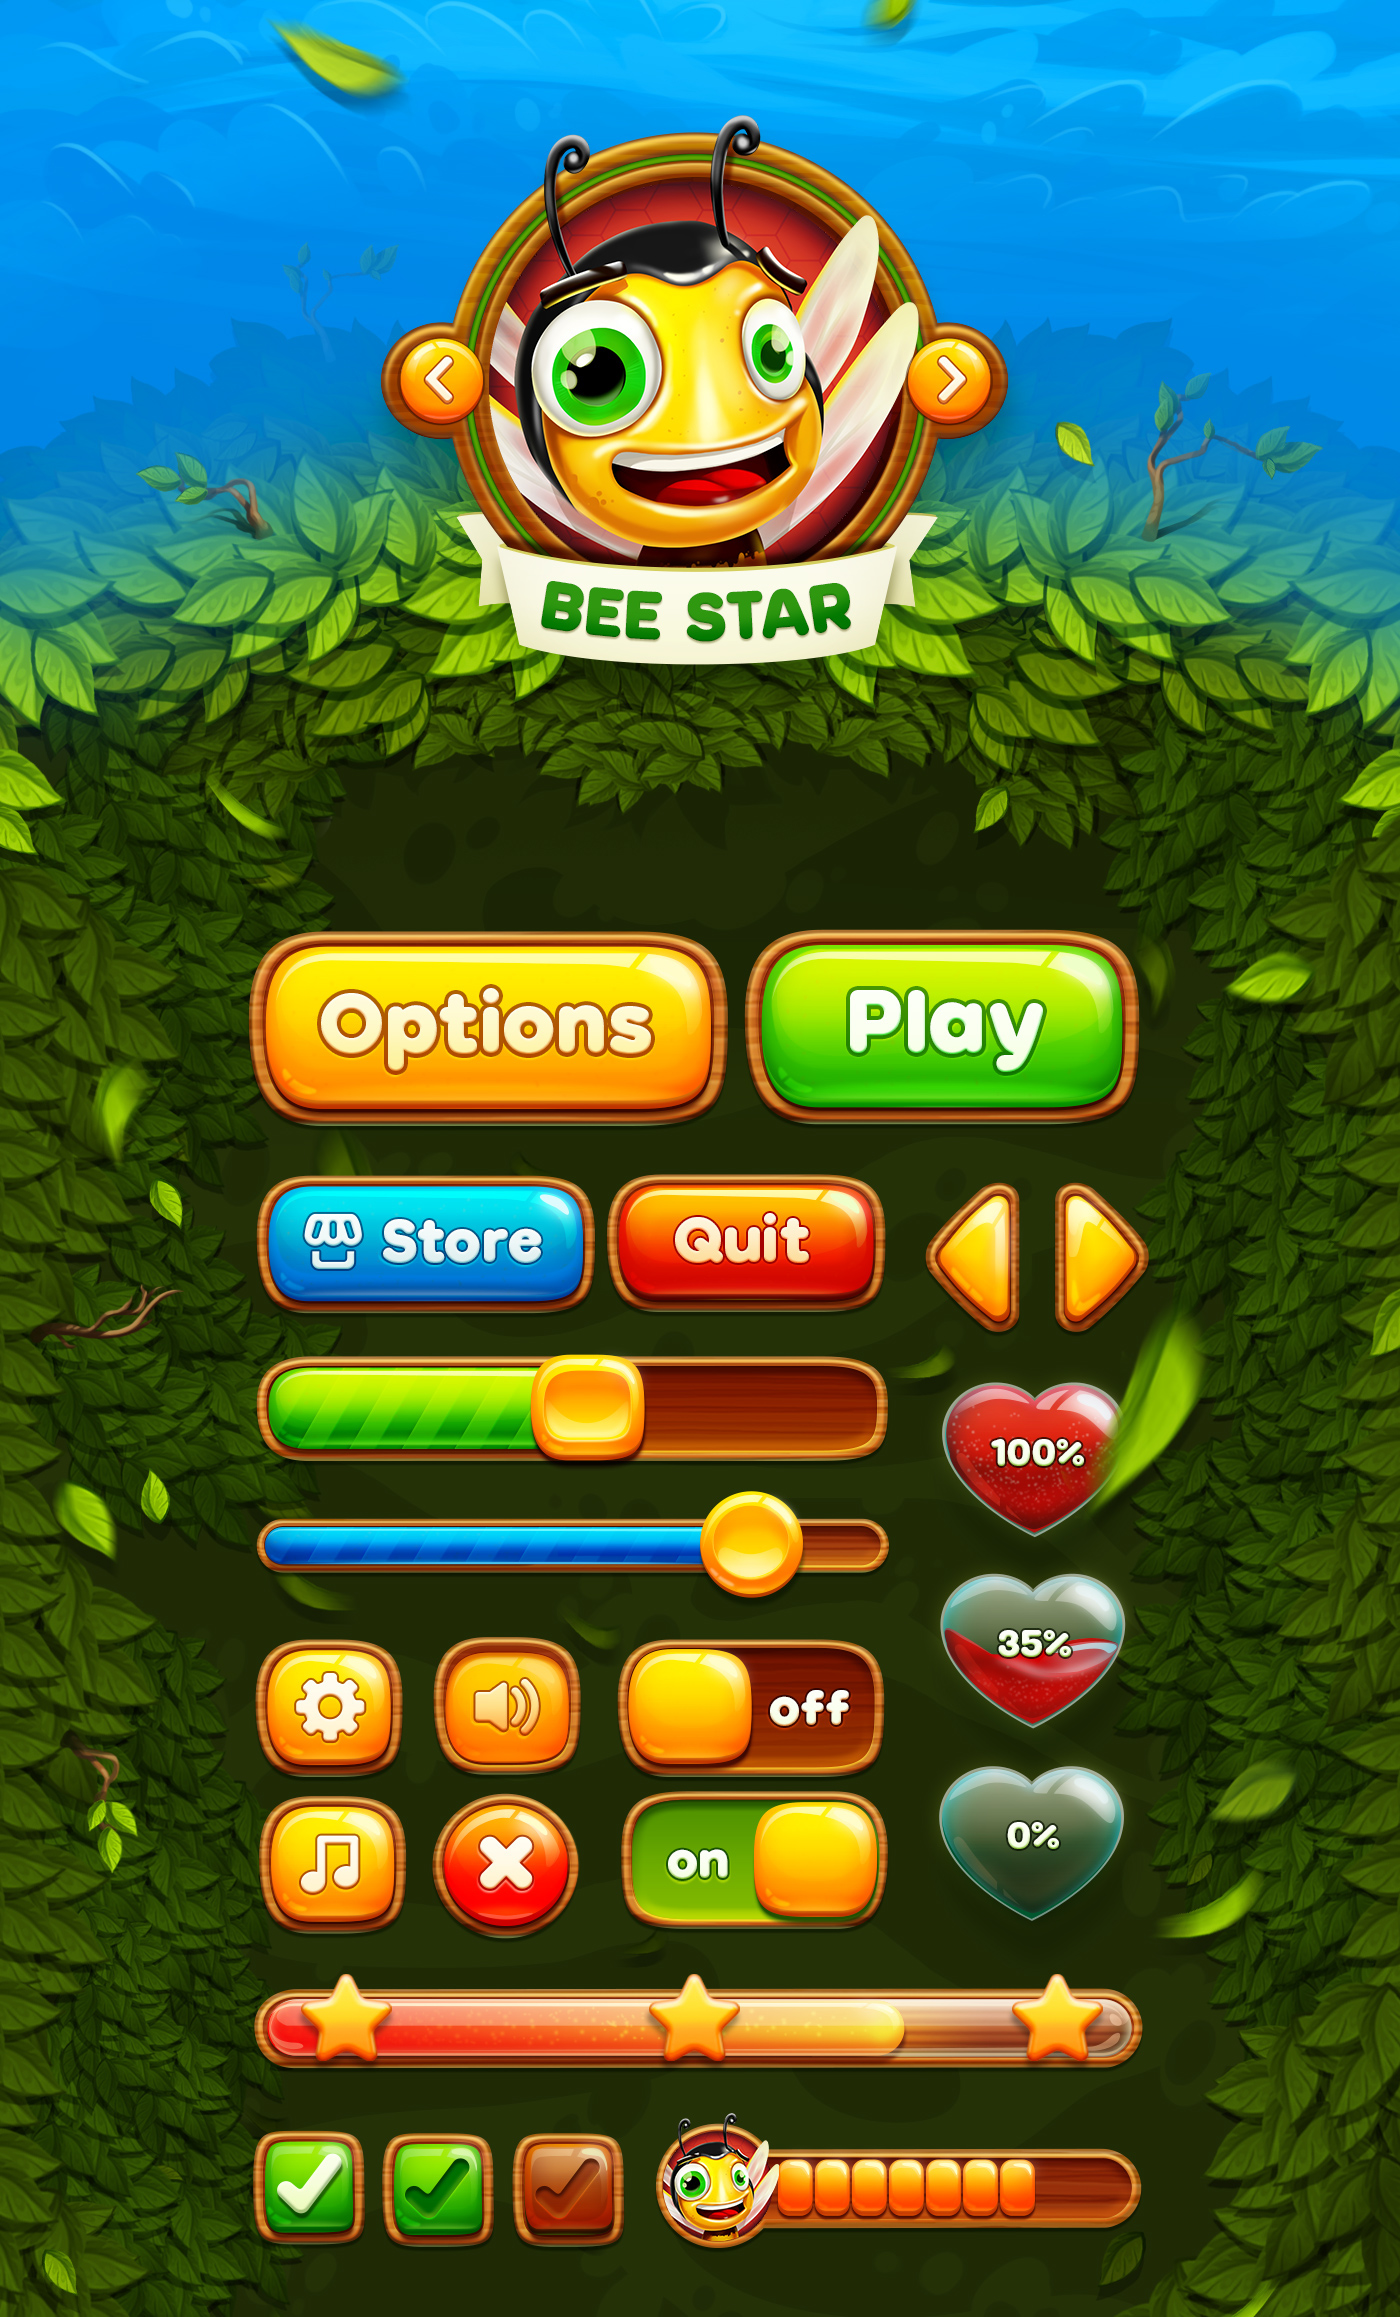 Bee Star game UI kit on Behance